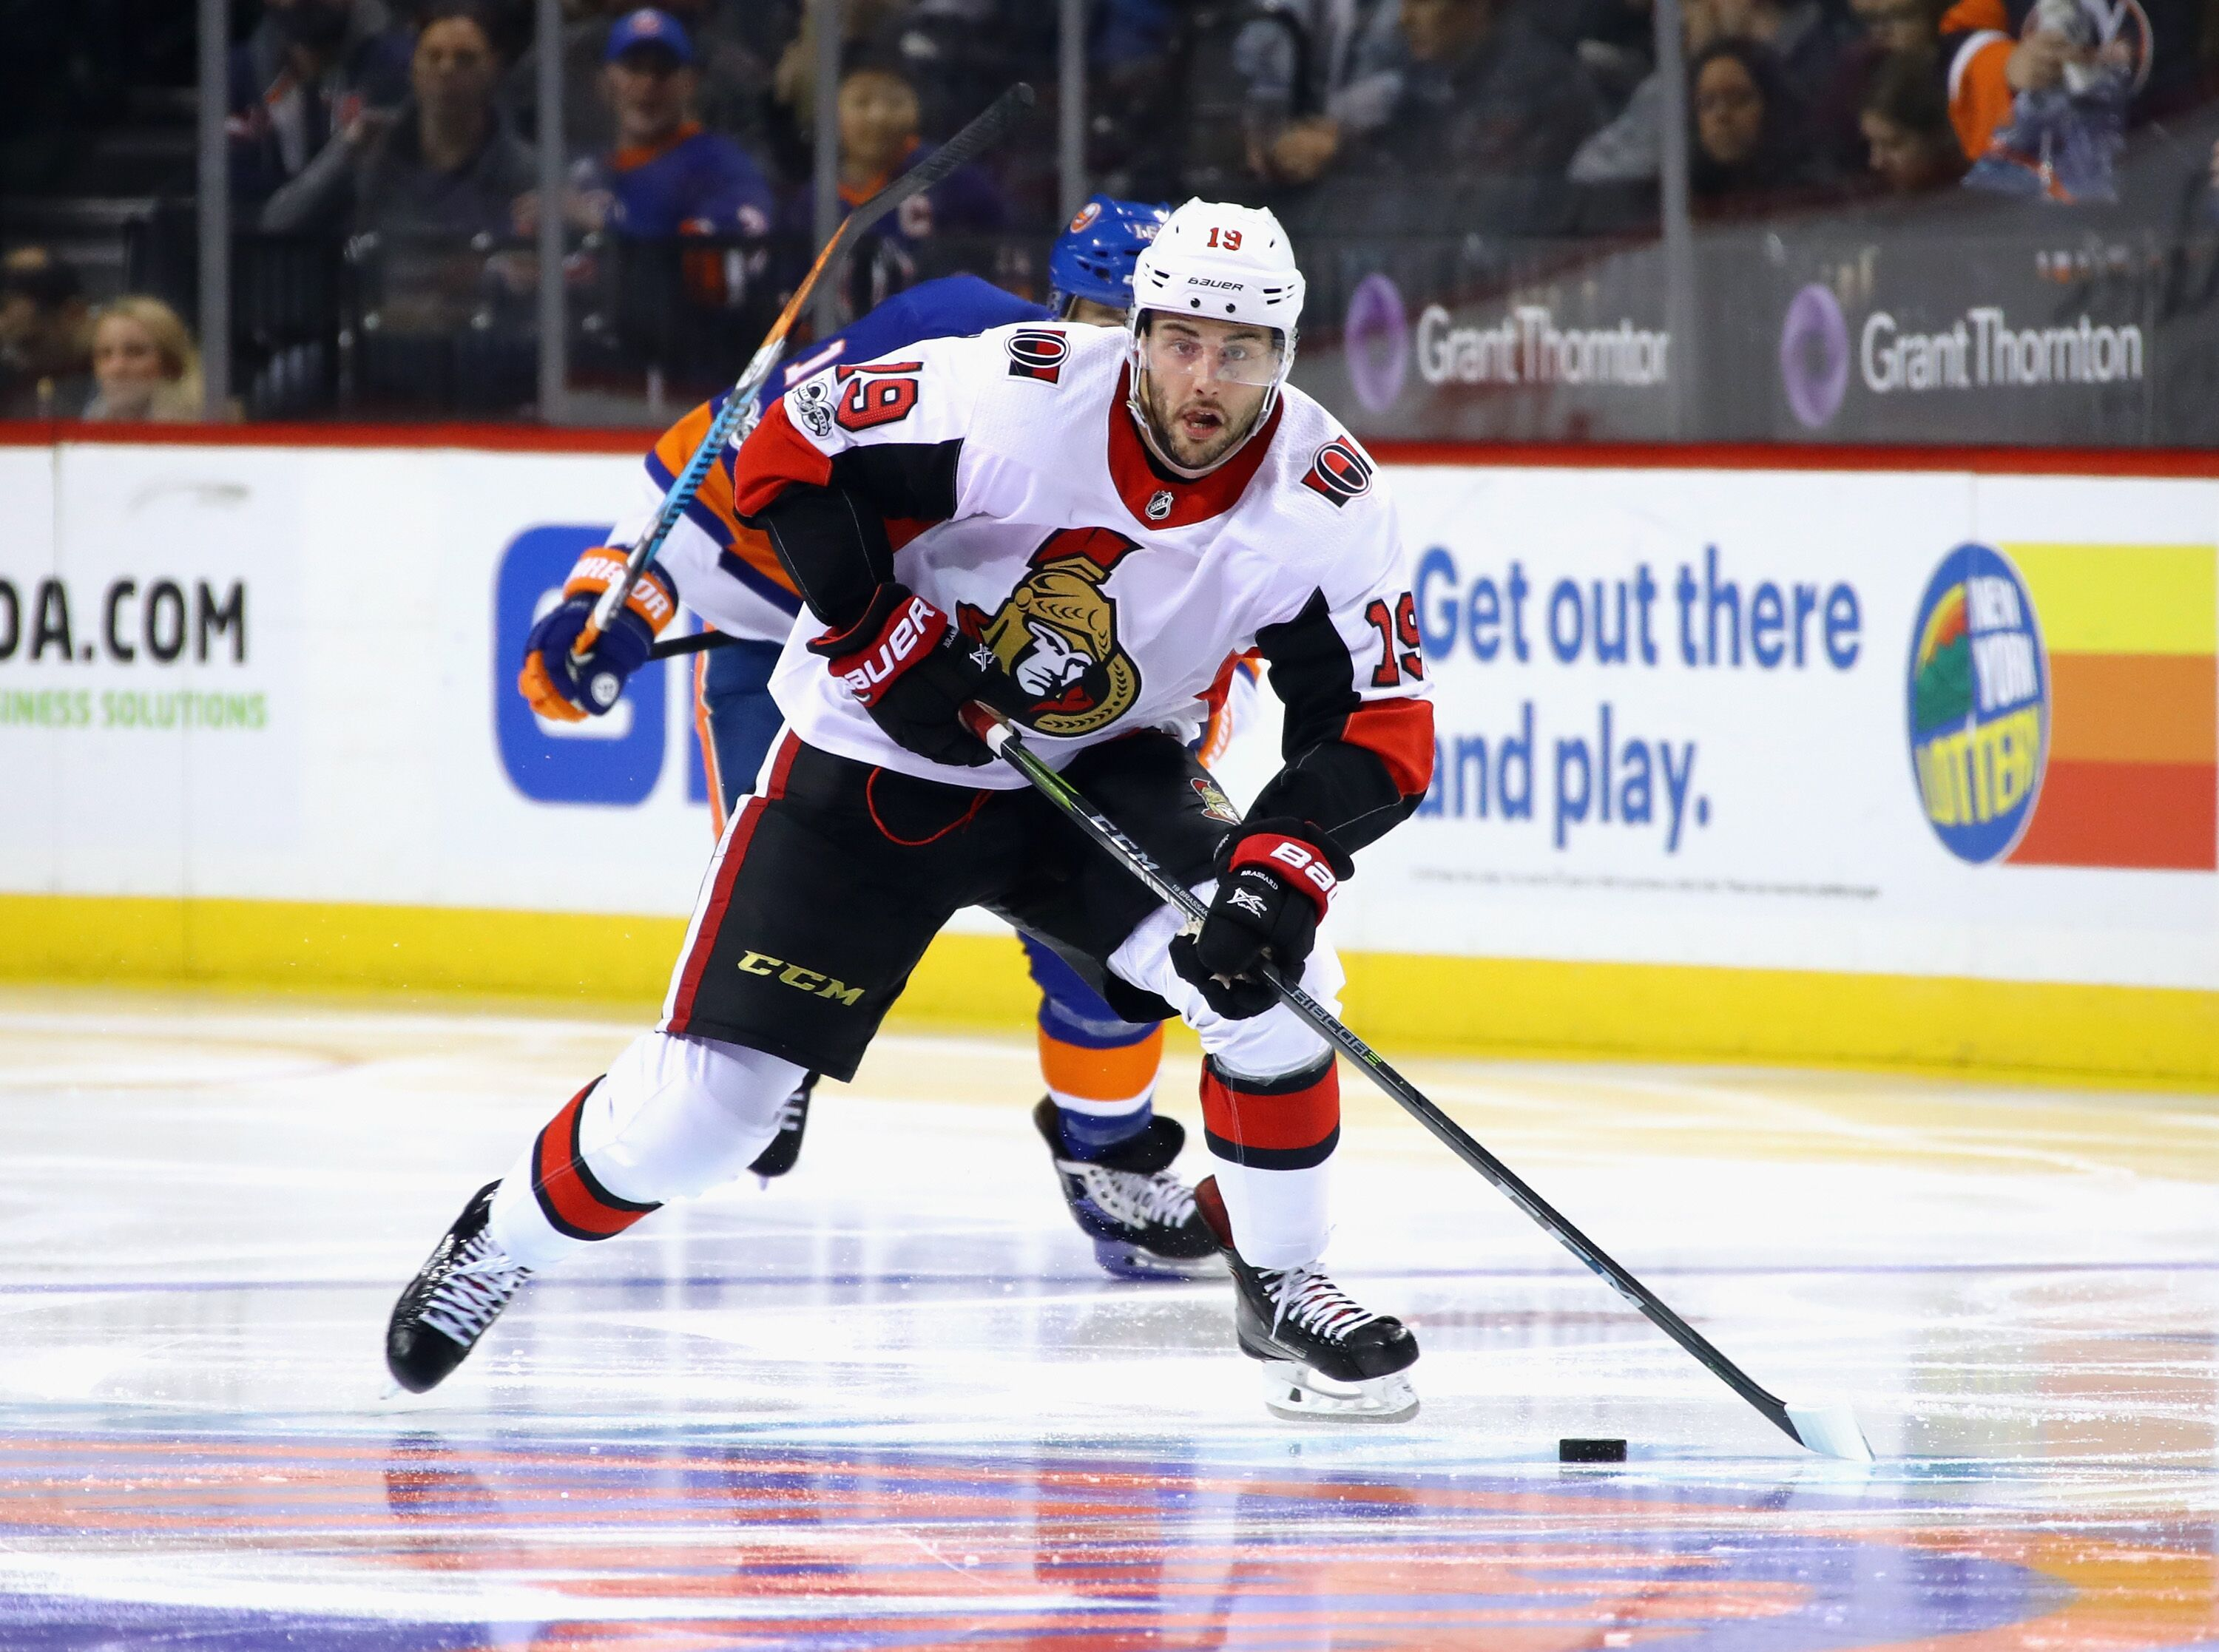 884455030-ottawa-senators-v-new-york-islanders.jpg